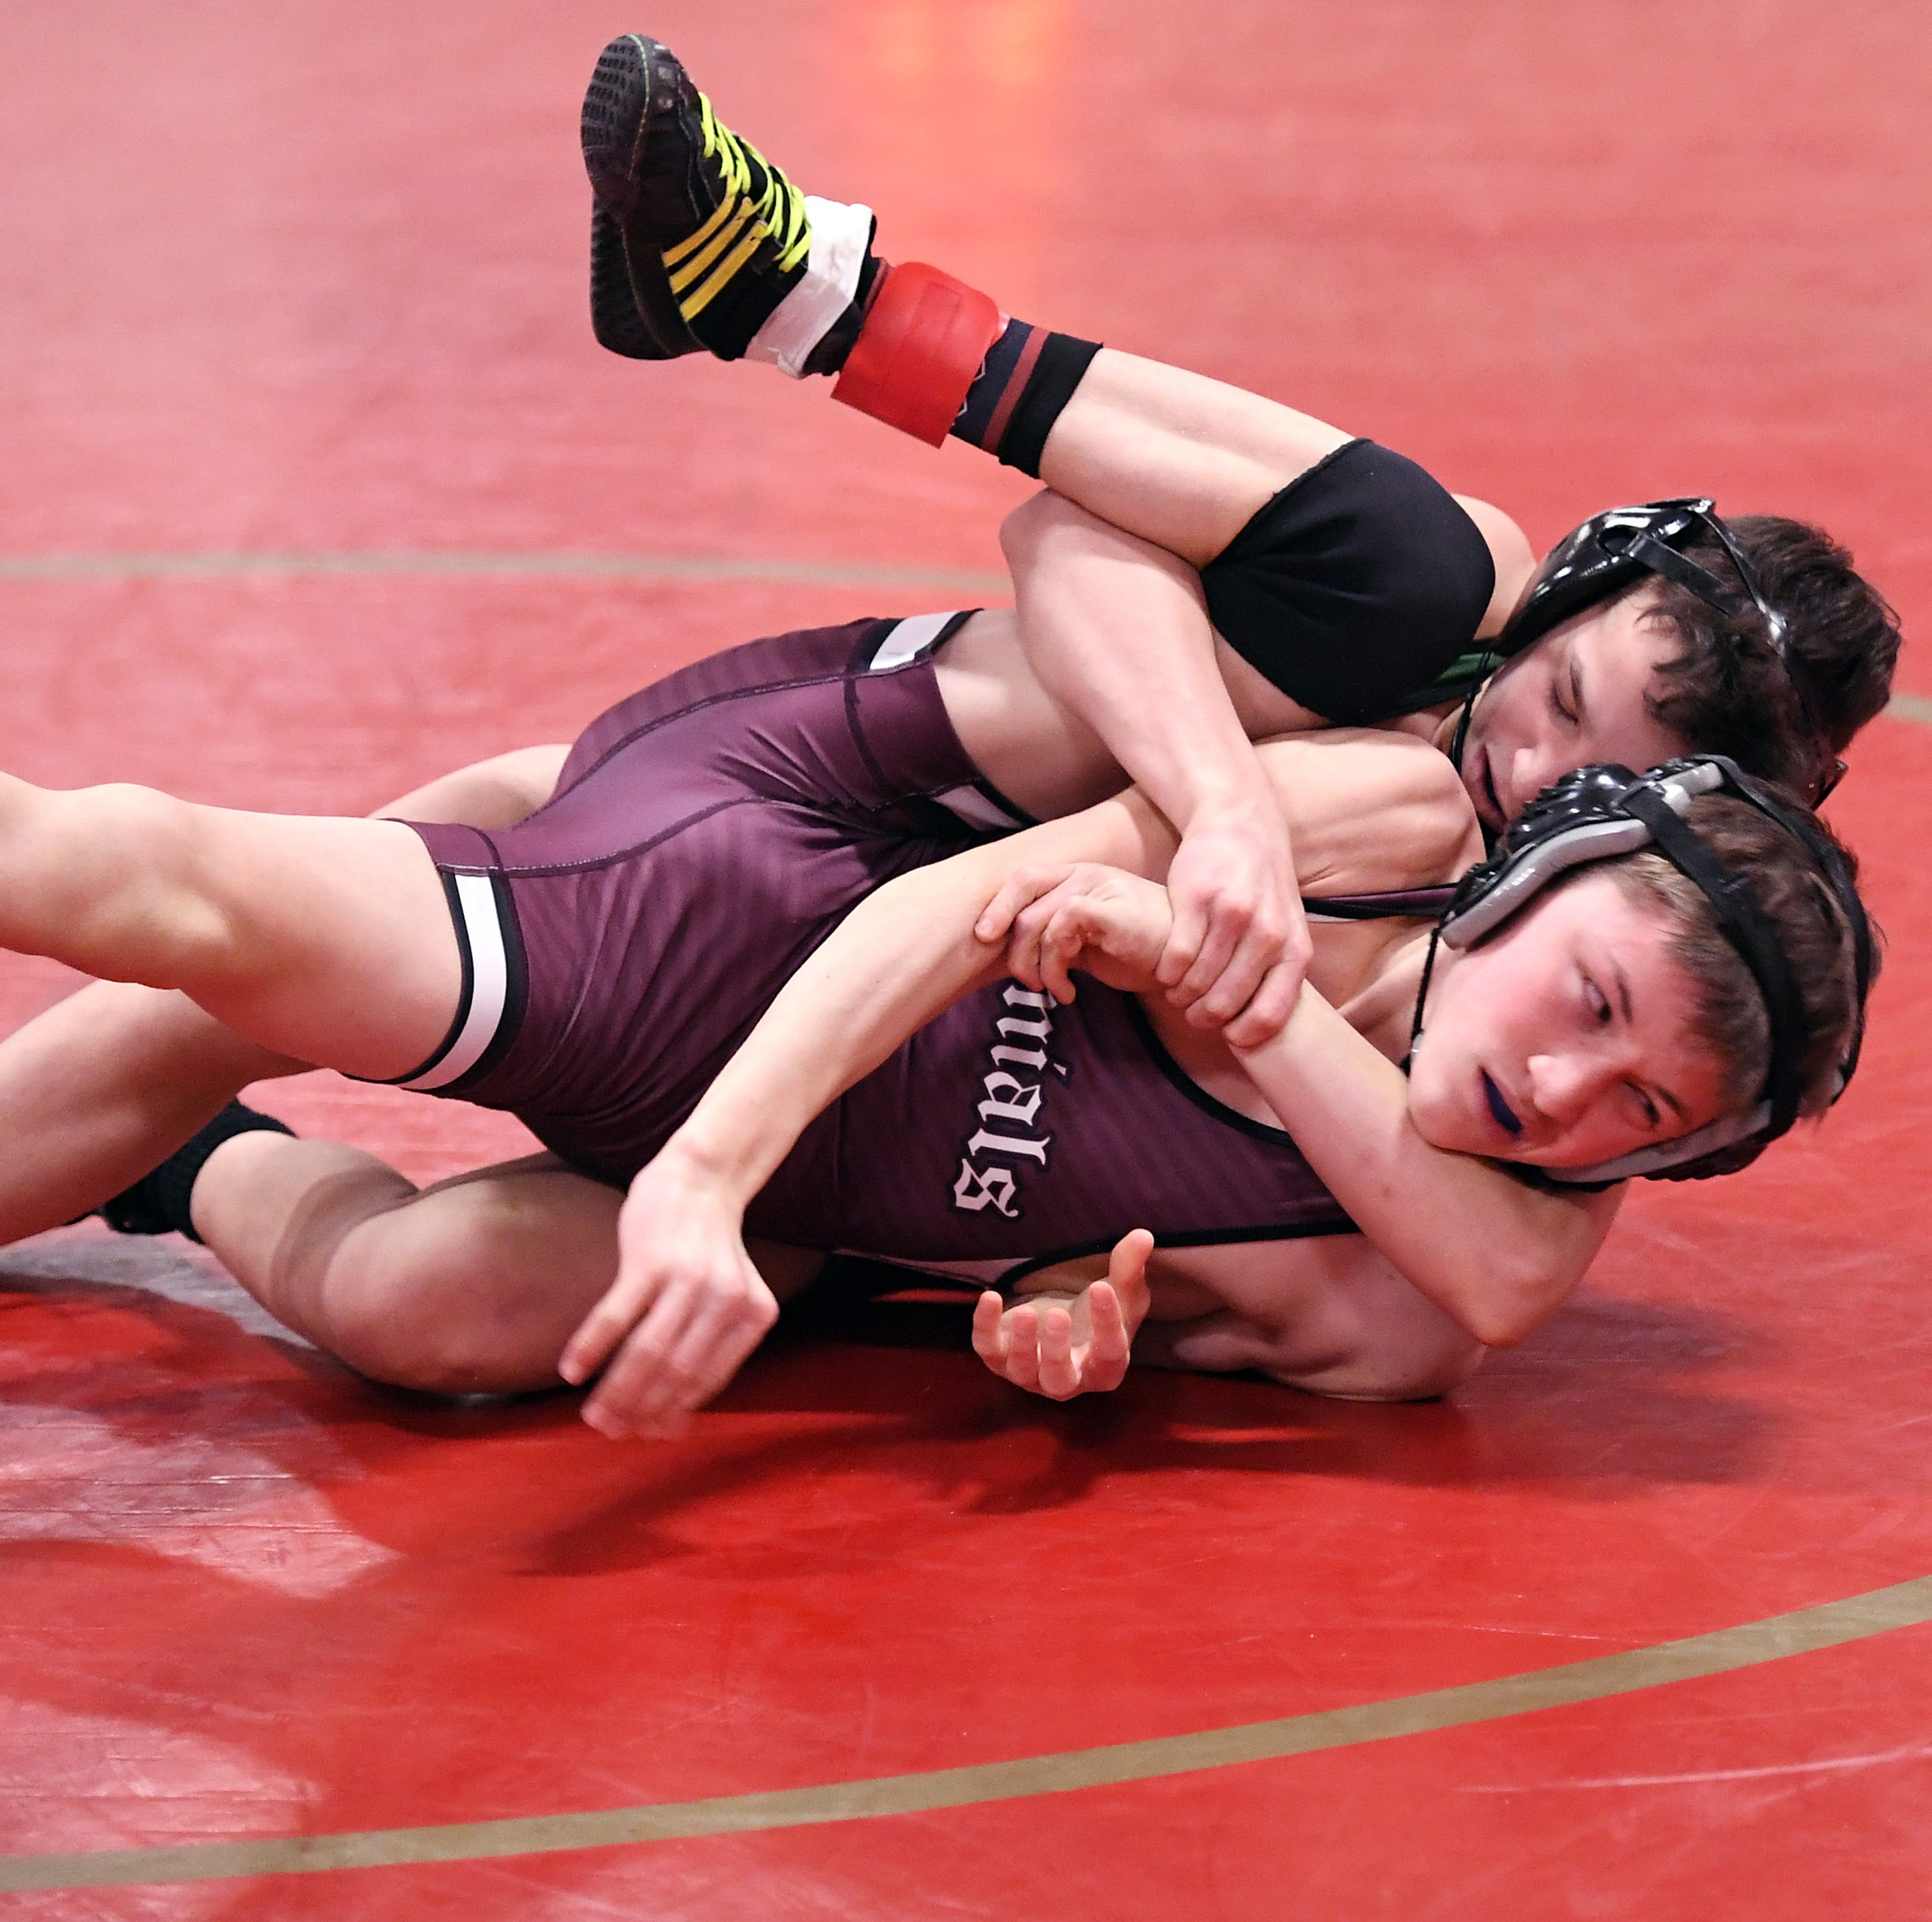 Montville wrestling can't sustain emotion in Group semifinal